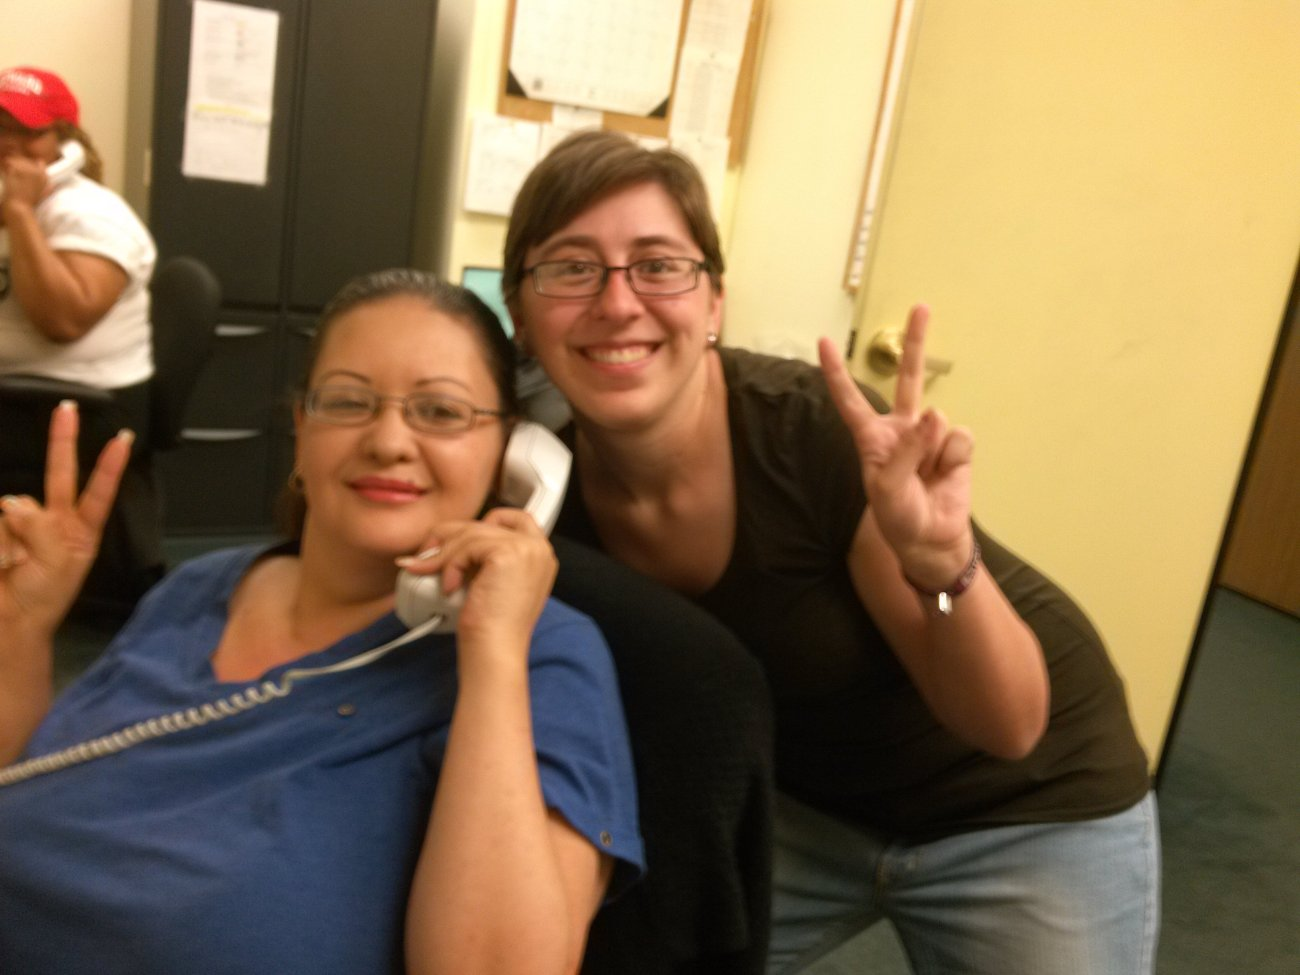 Selina and Corrie are our record-setters, connecting more people with Sen. Durbin's office than any other staffers!